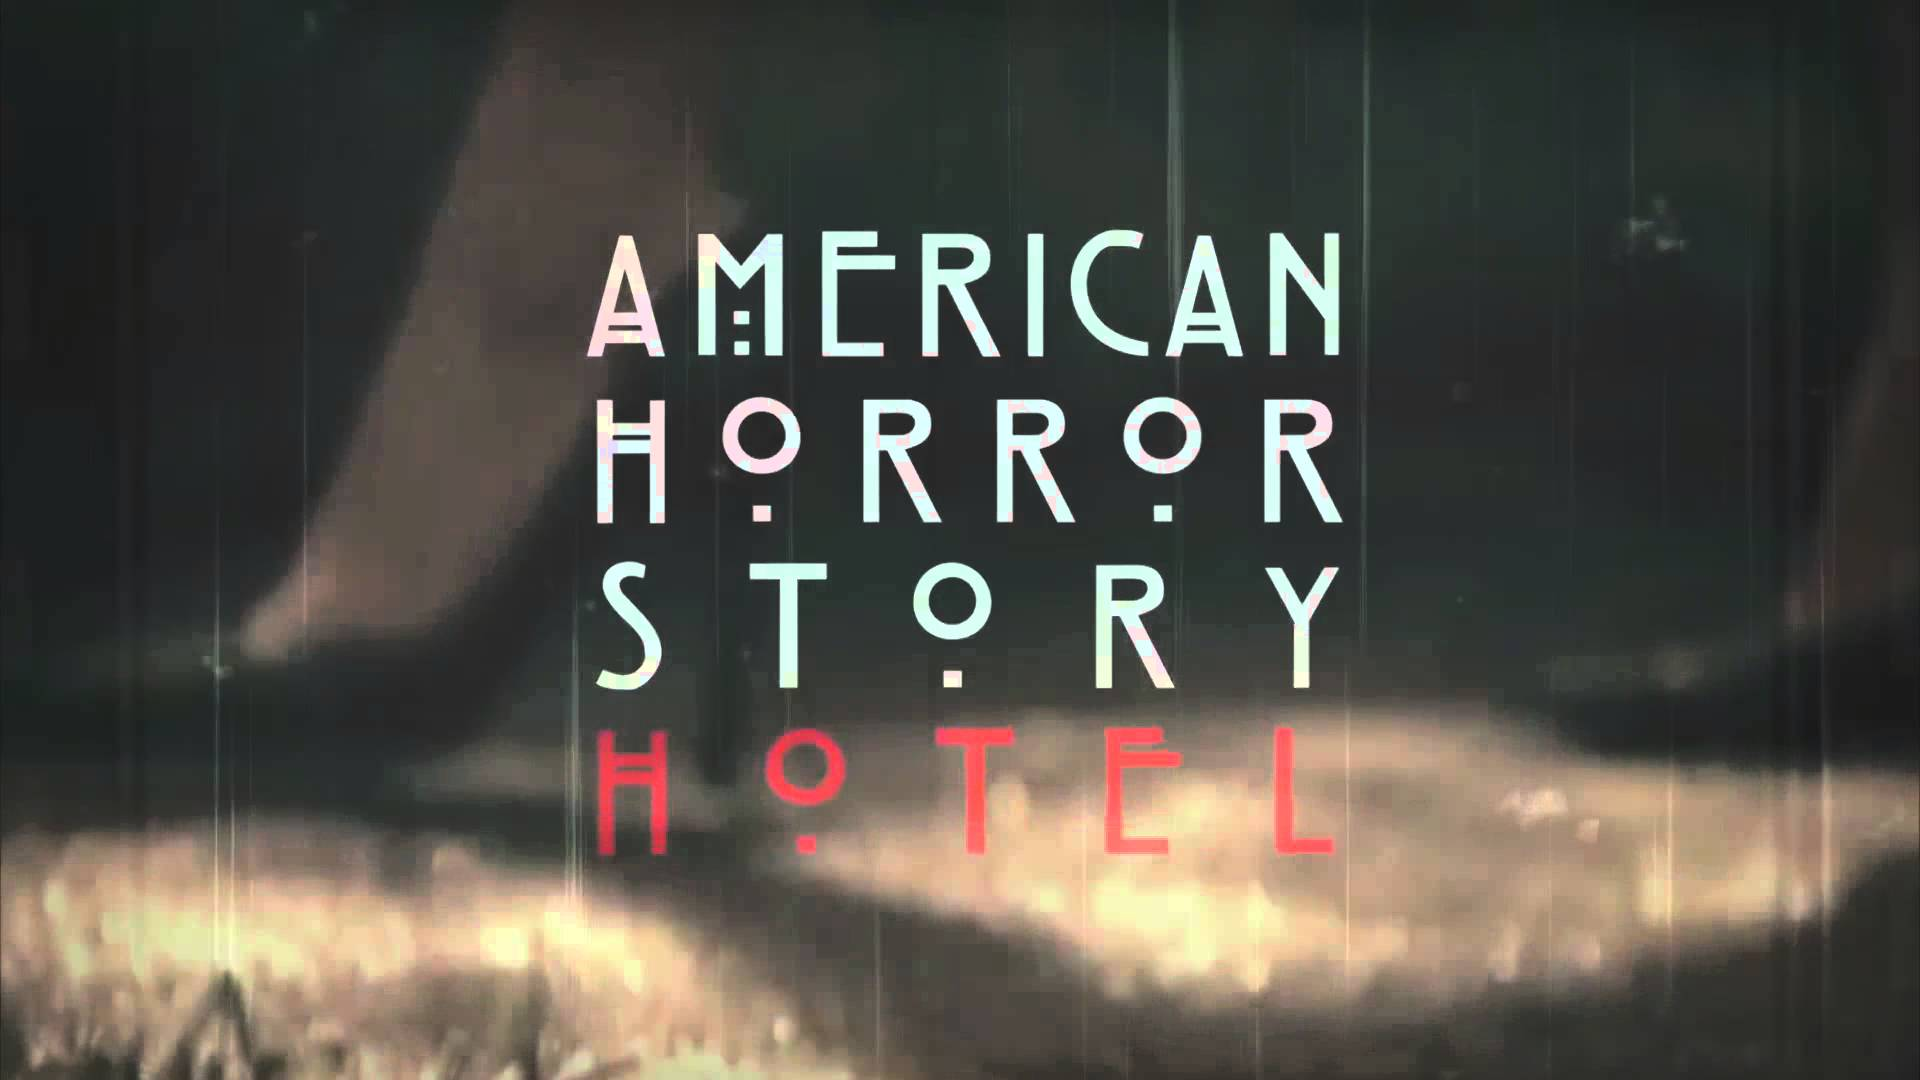 American Horror Story: Hotel Wallpapers High Resolution and Quality